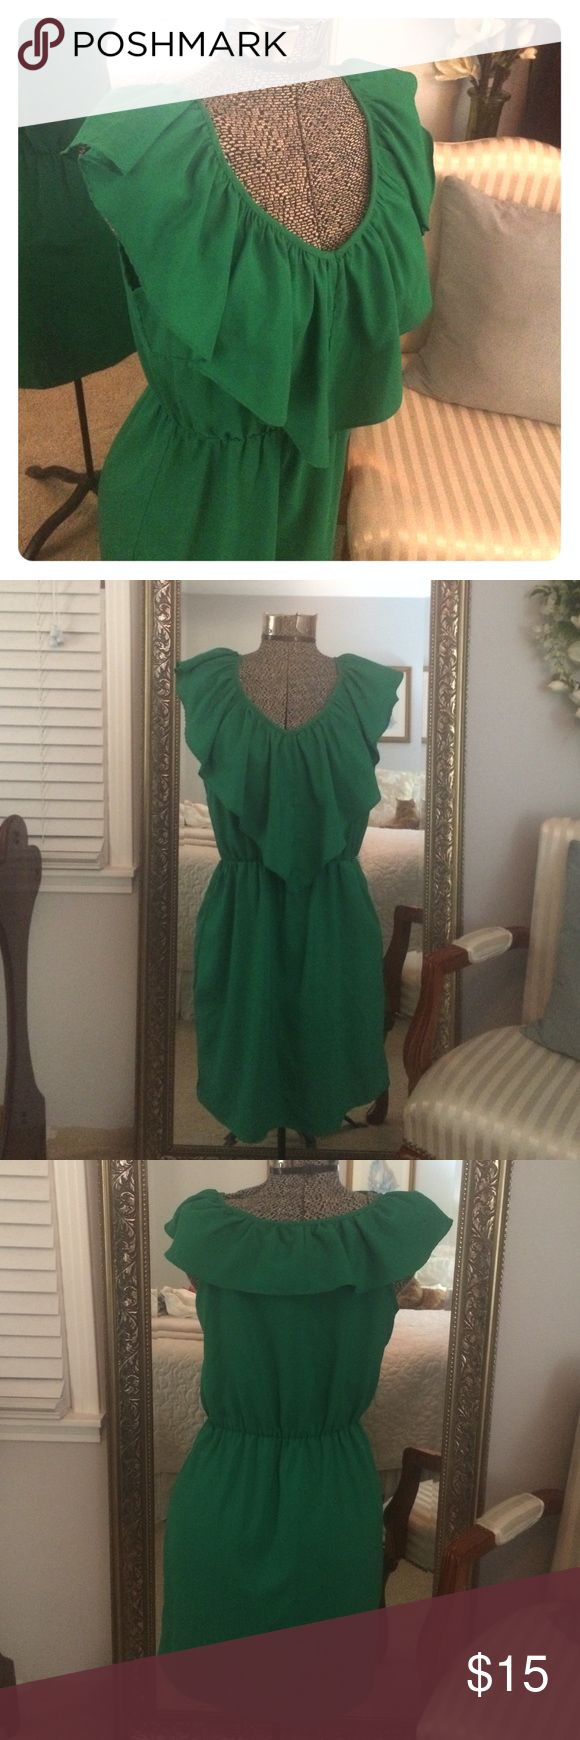 Kelly green Off Fifth dress size S Kelly Green dress purchased from Off Fifth. Size small. Barely worn so it's in like new condition. A New York Dresses Mini